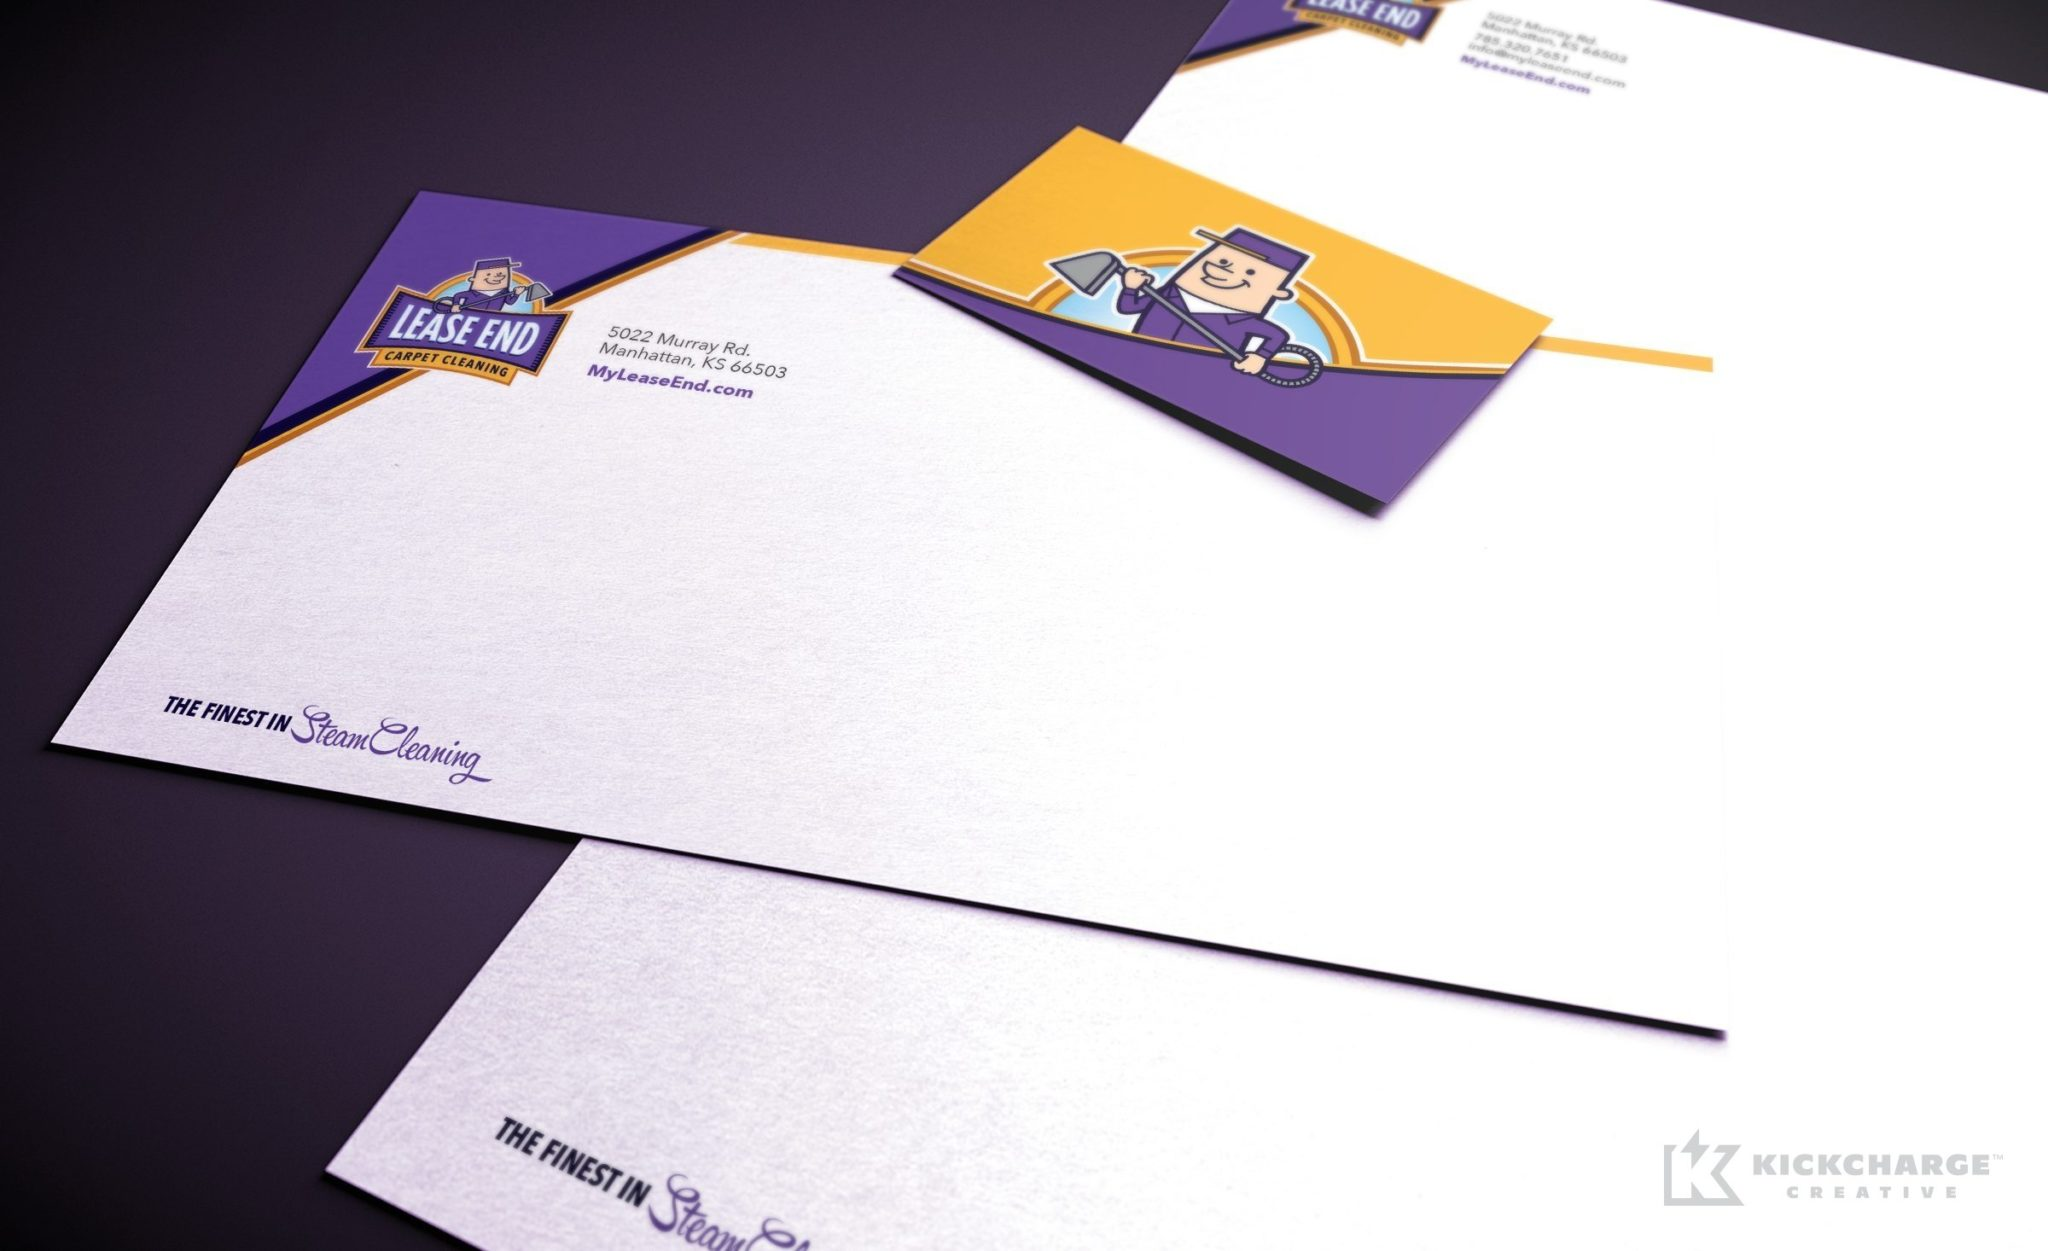 Stationery design for Lease End Carpet Cleaning, a carpet cleaning service company in Kansas.